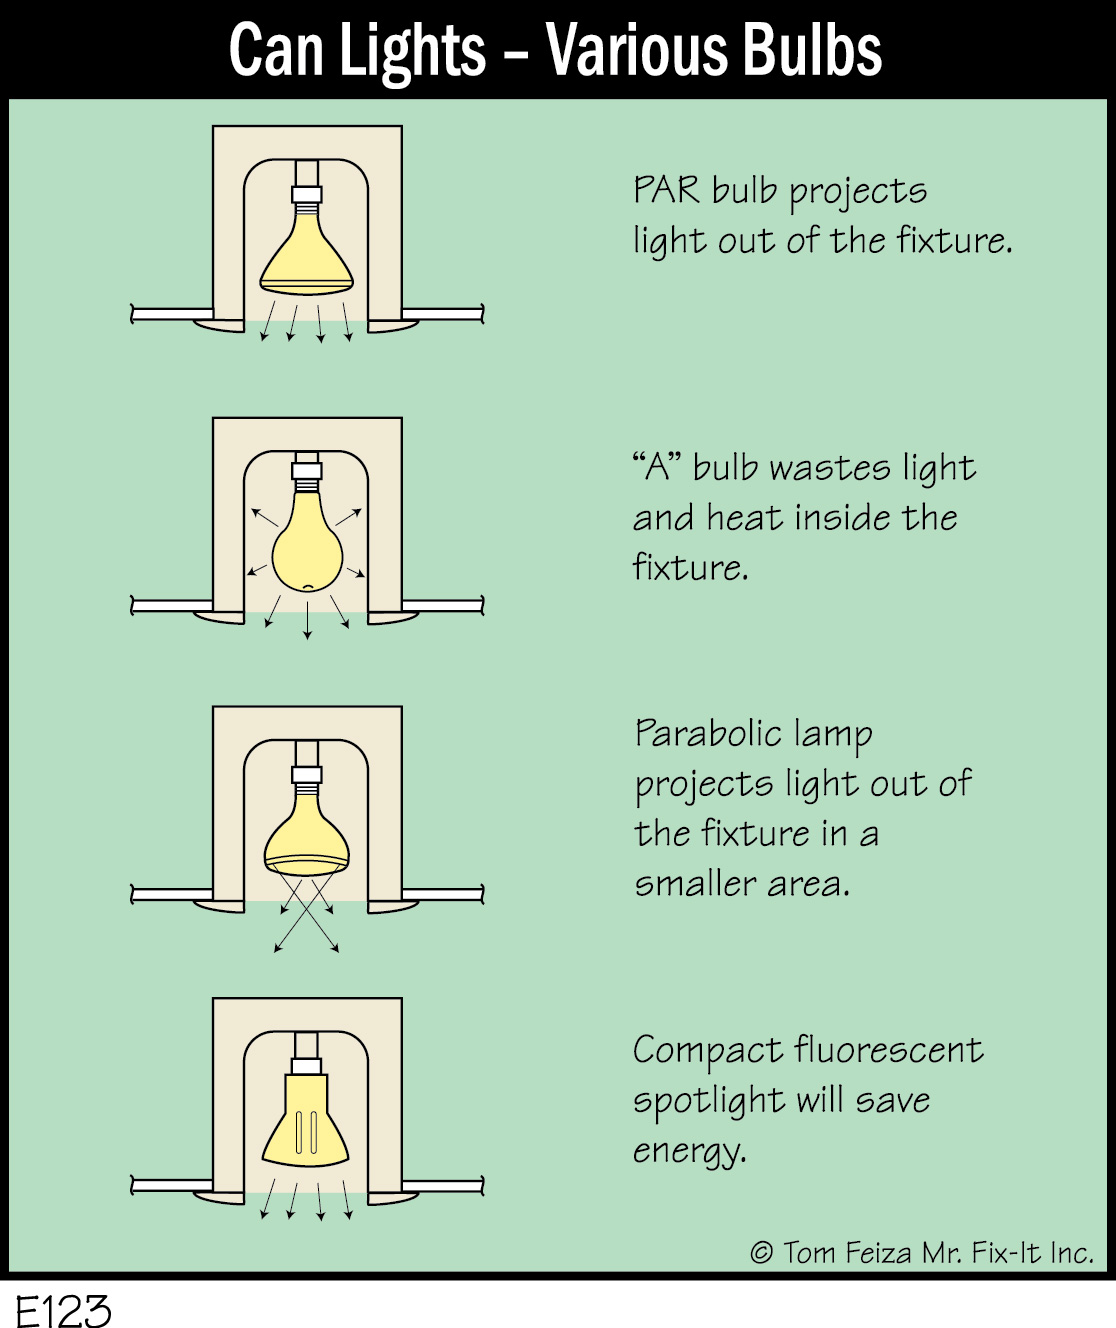 E123C - Can Lights - Proper Bulbs_300dpi